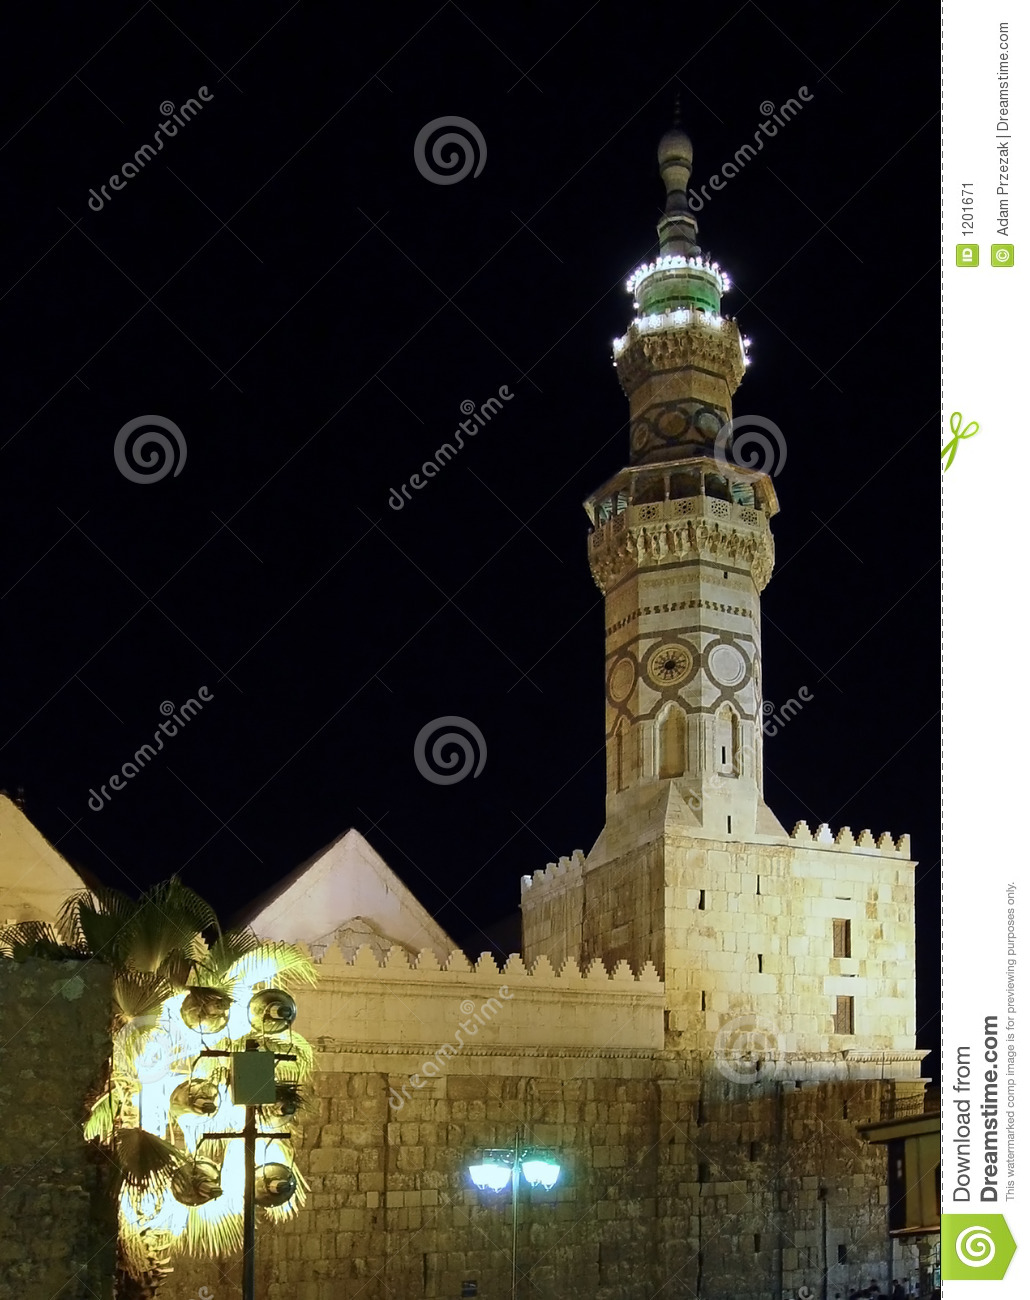 Mosque by night. Damascus, Syria